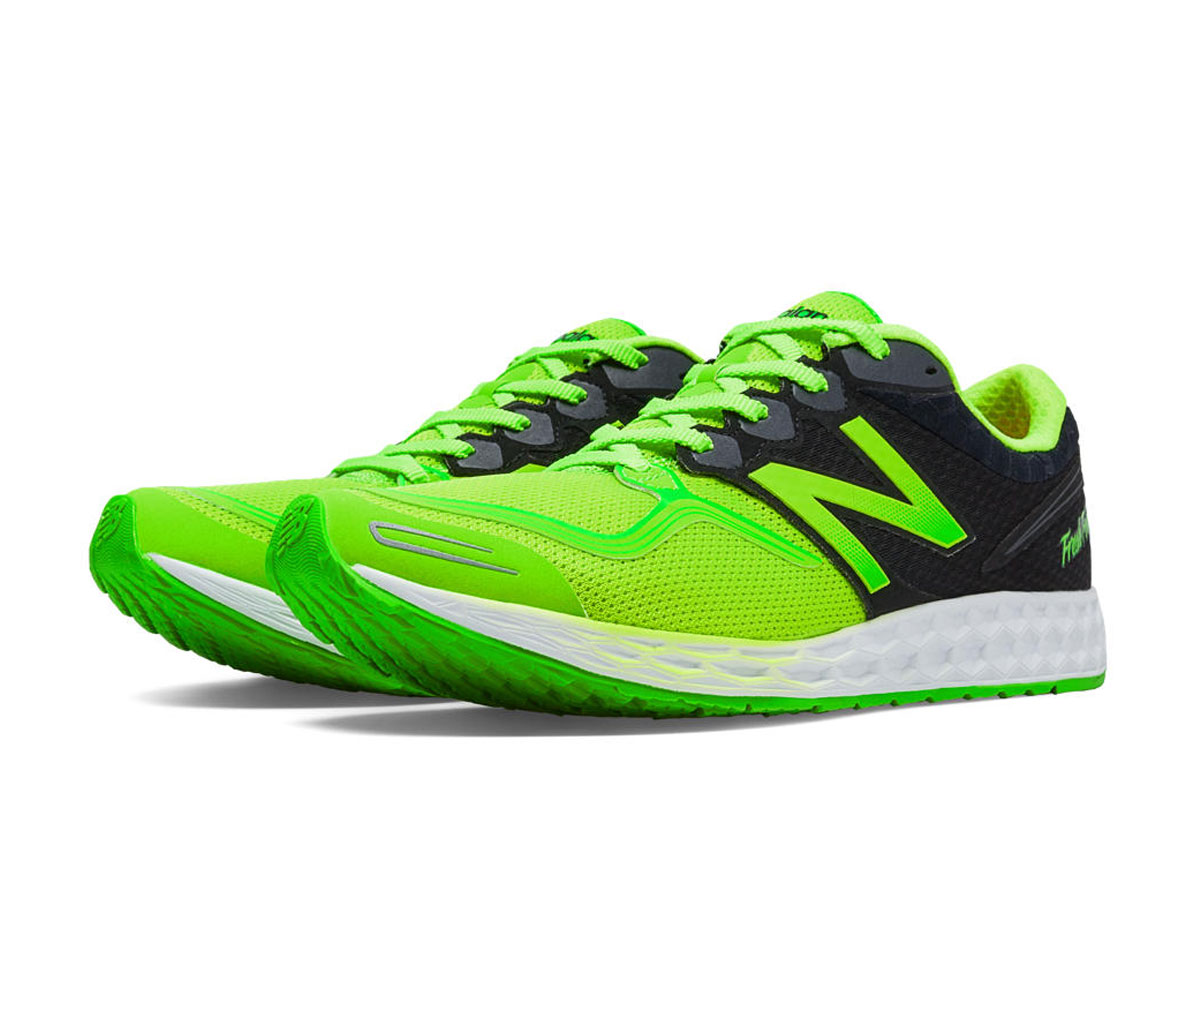 best of new balance running shoes